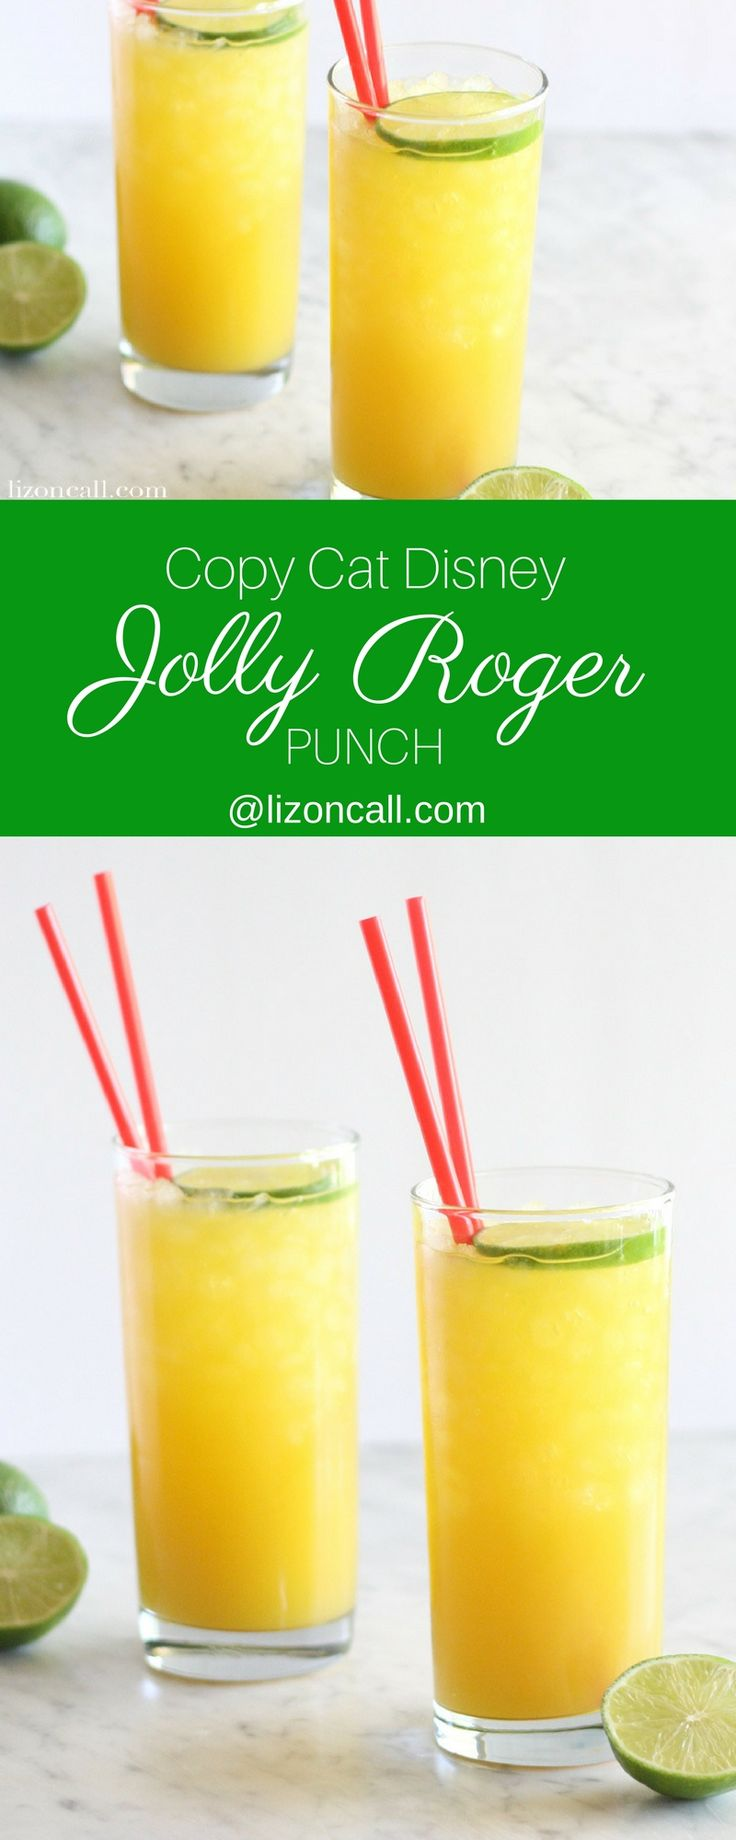 This copycat version of the Jolly Roger Punch just might be better than the original found at Disney for the 50th anniversary of Pirates of the Caribbean.